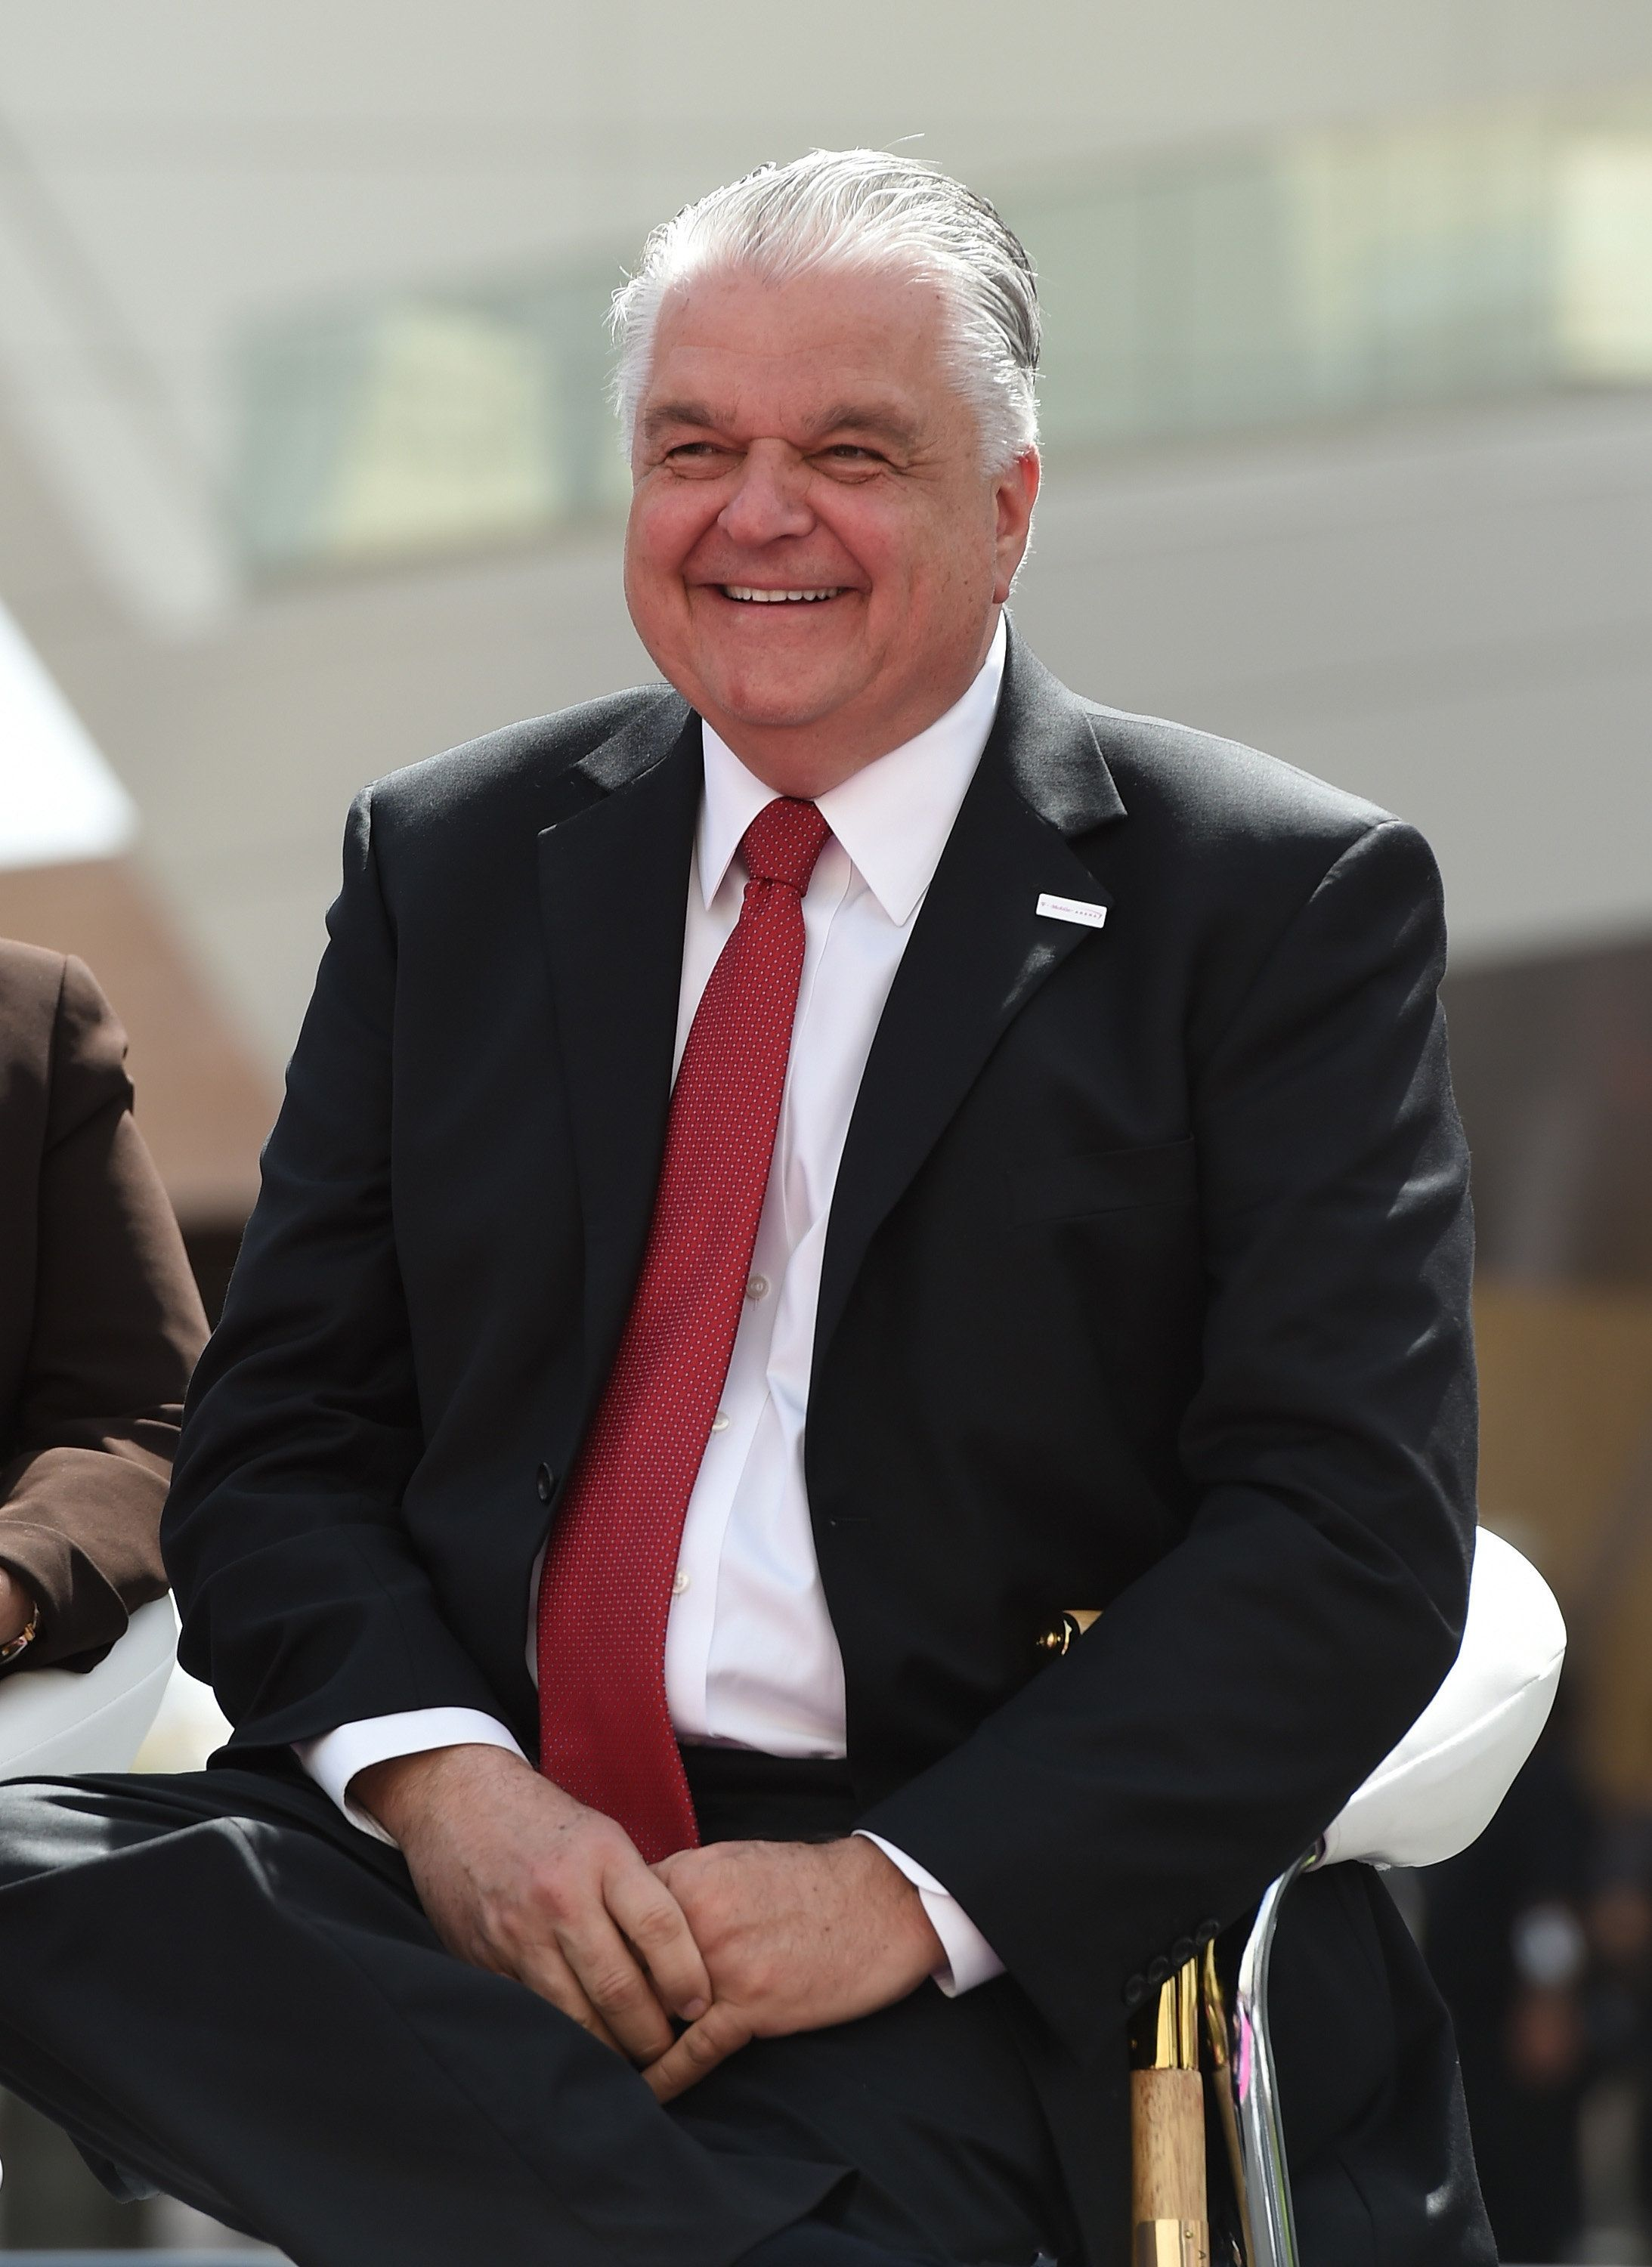 Nevada Democratic gubernatorial candidate Steve Sisolak is running on increased funding for education.